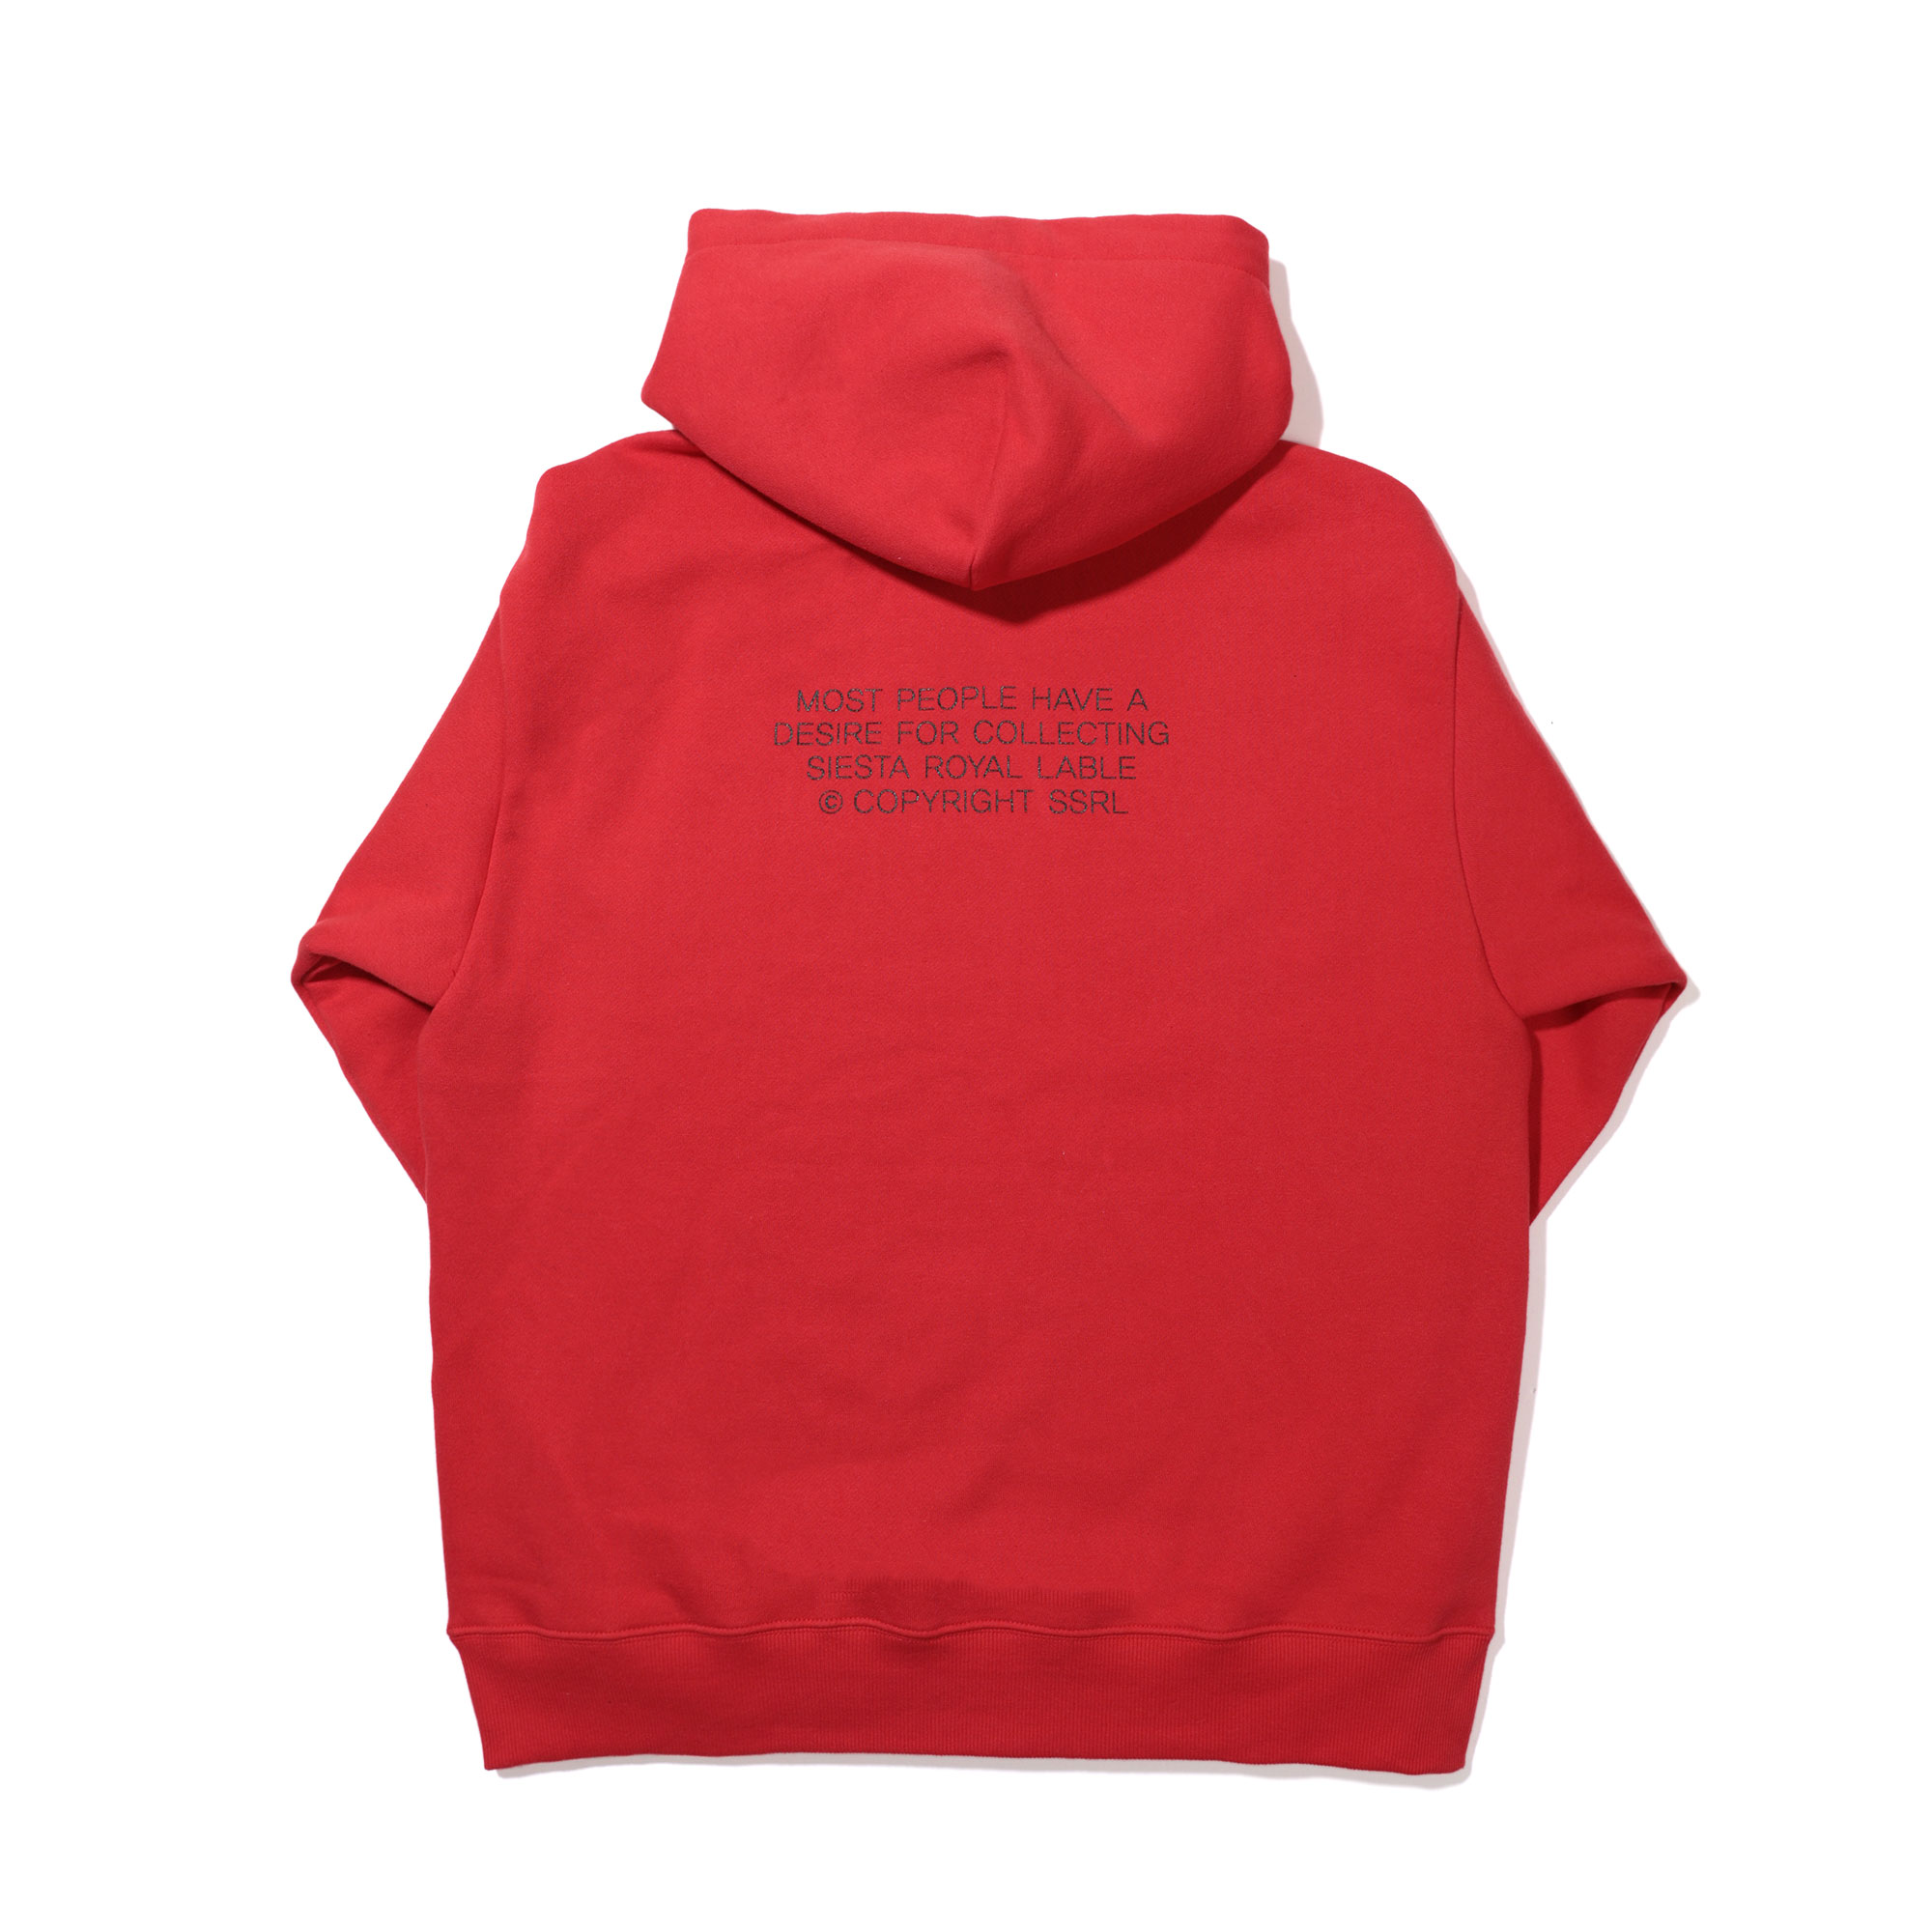 authentic hood / red